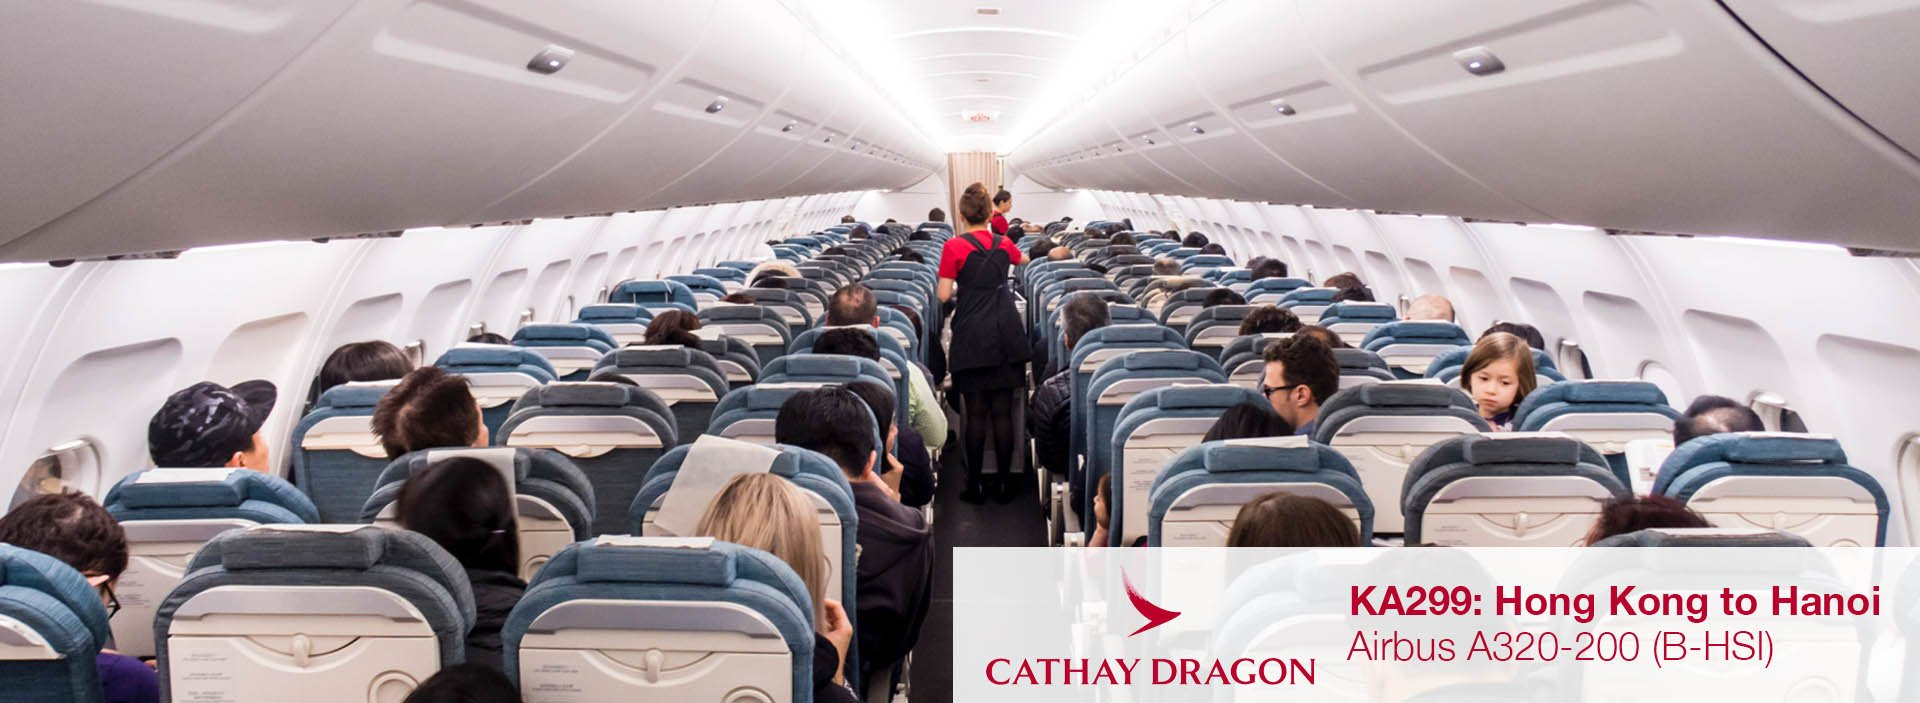 Flight Review: Cathay Dragon A320 Economy Class from Hong Kong to Hanoi